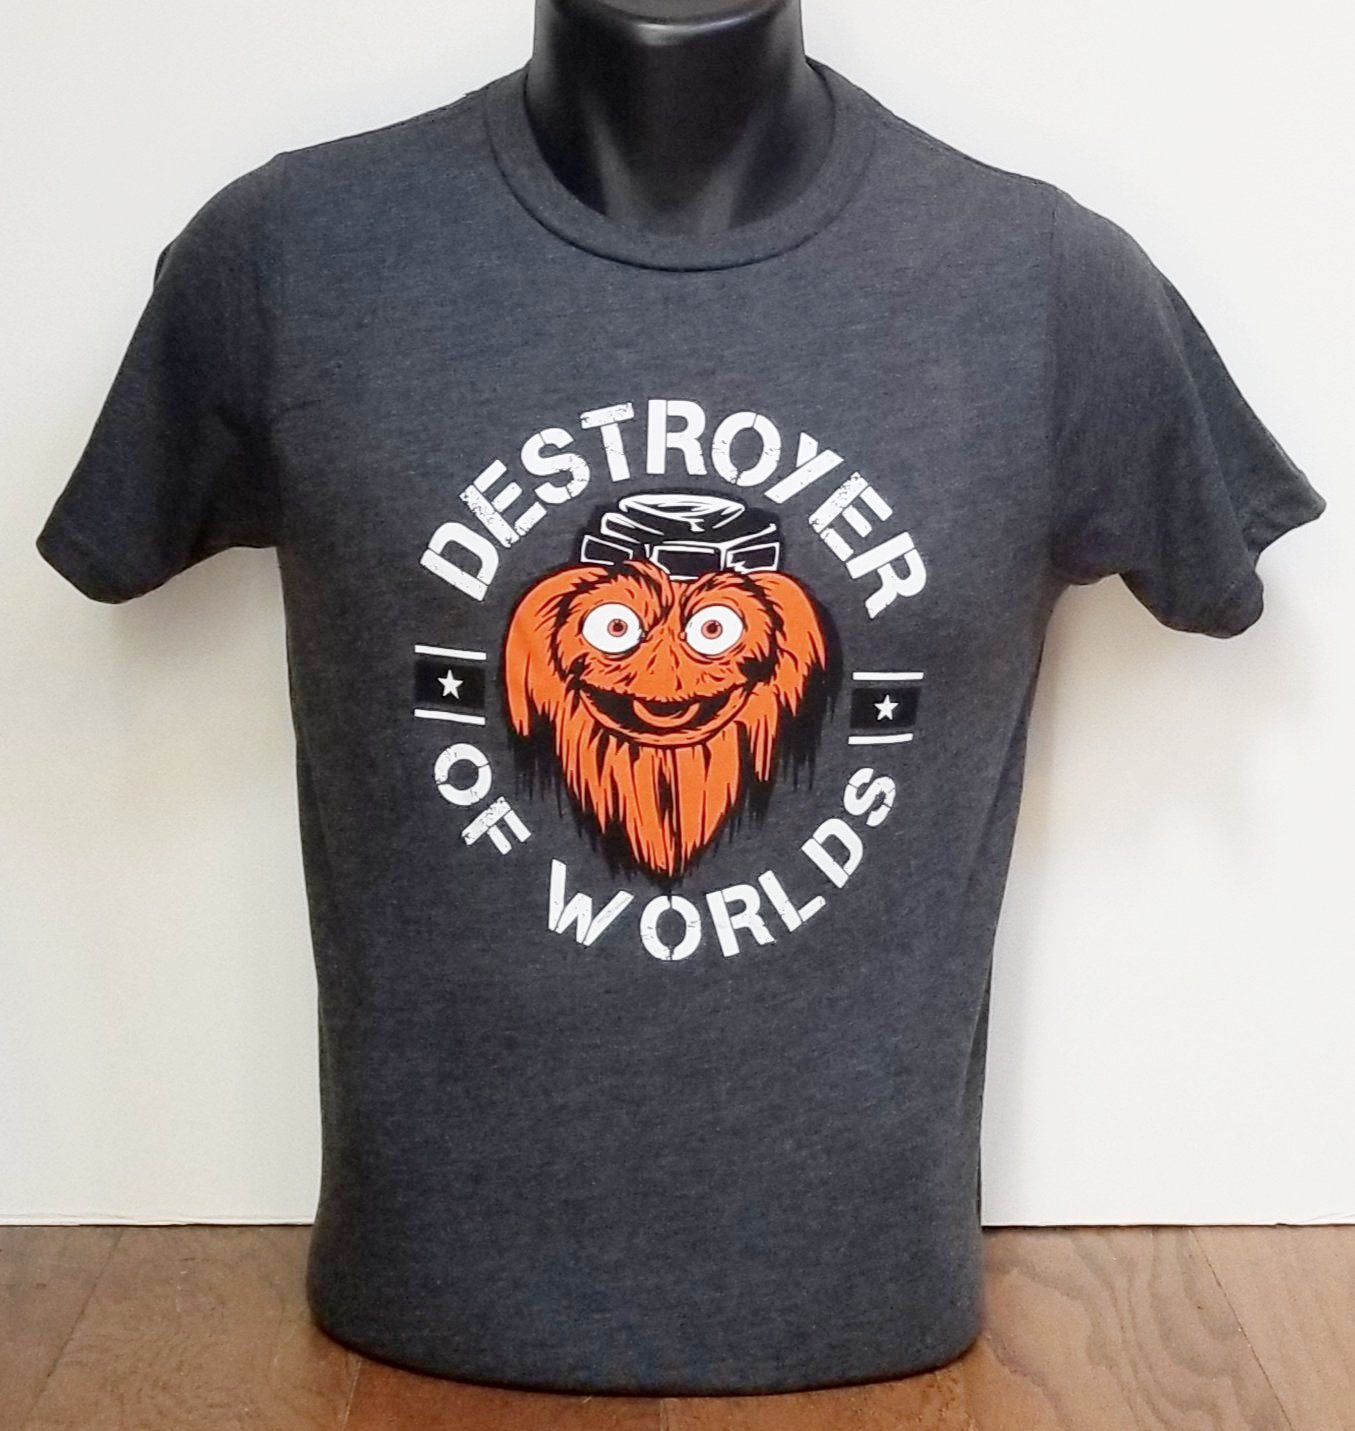 93e4a1f61 Gritty Destroyer Of Worlds YOUTH Charcoal tee shirt - Shibe Vintage Sports